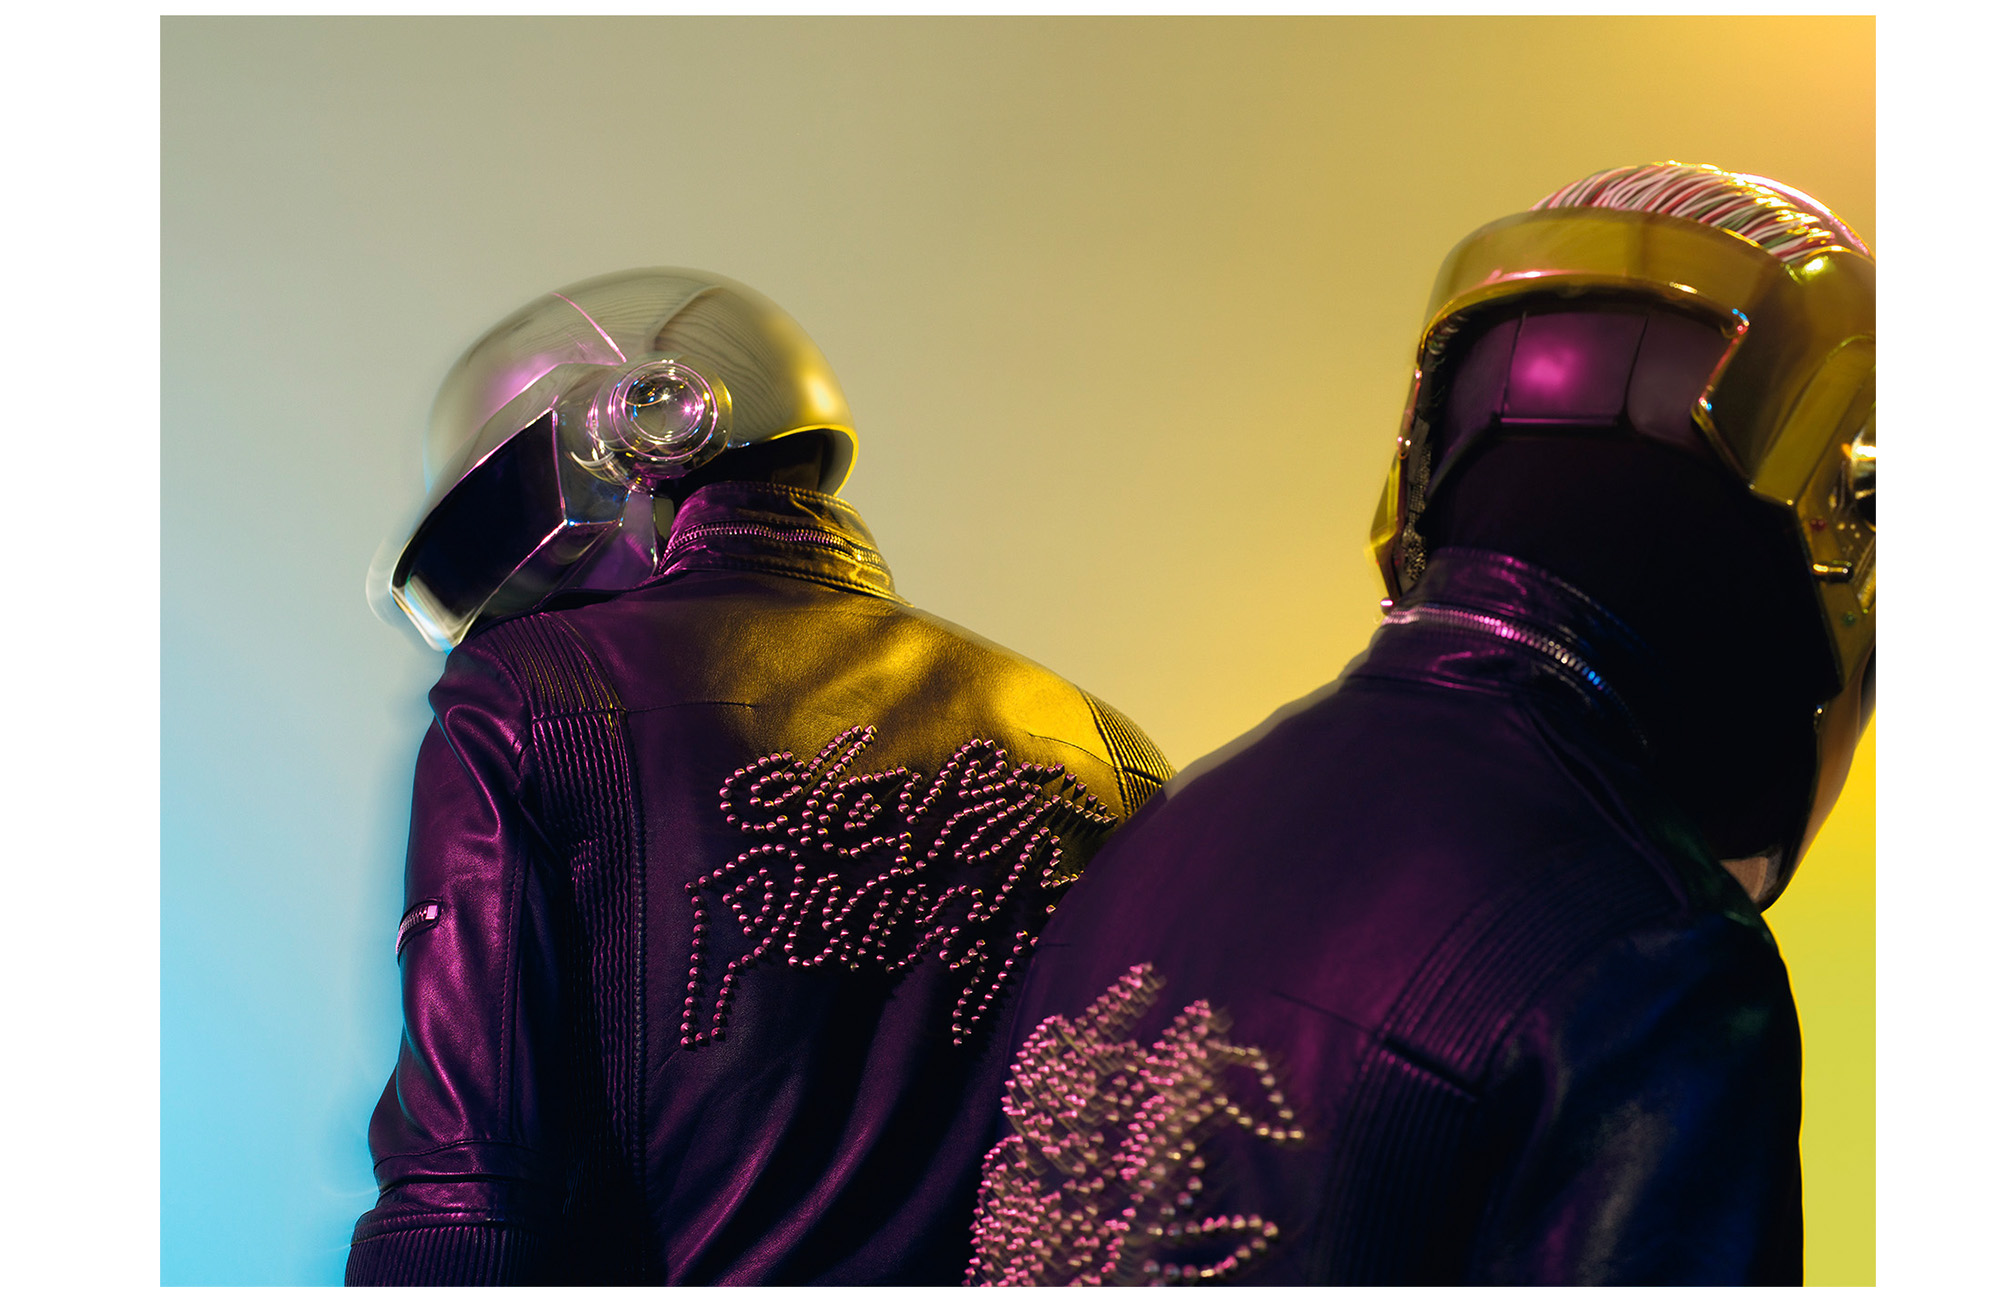 Daftpunk - 2 of 2